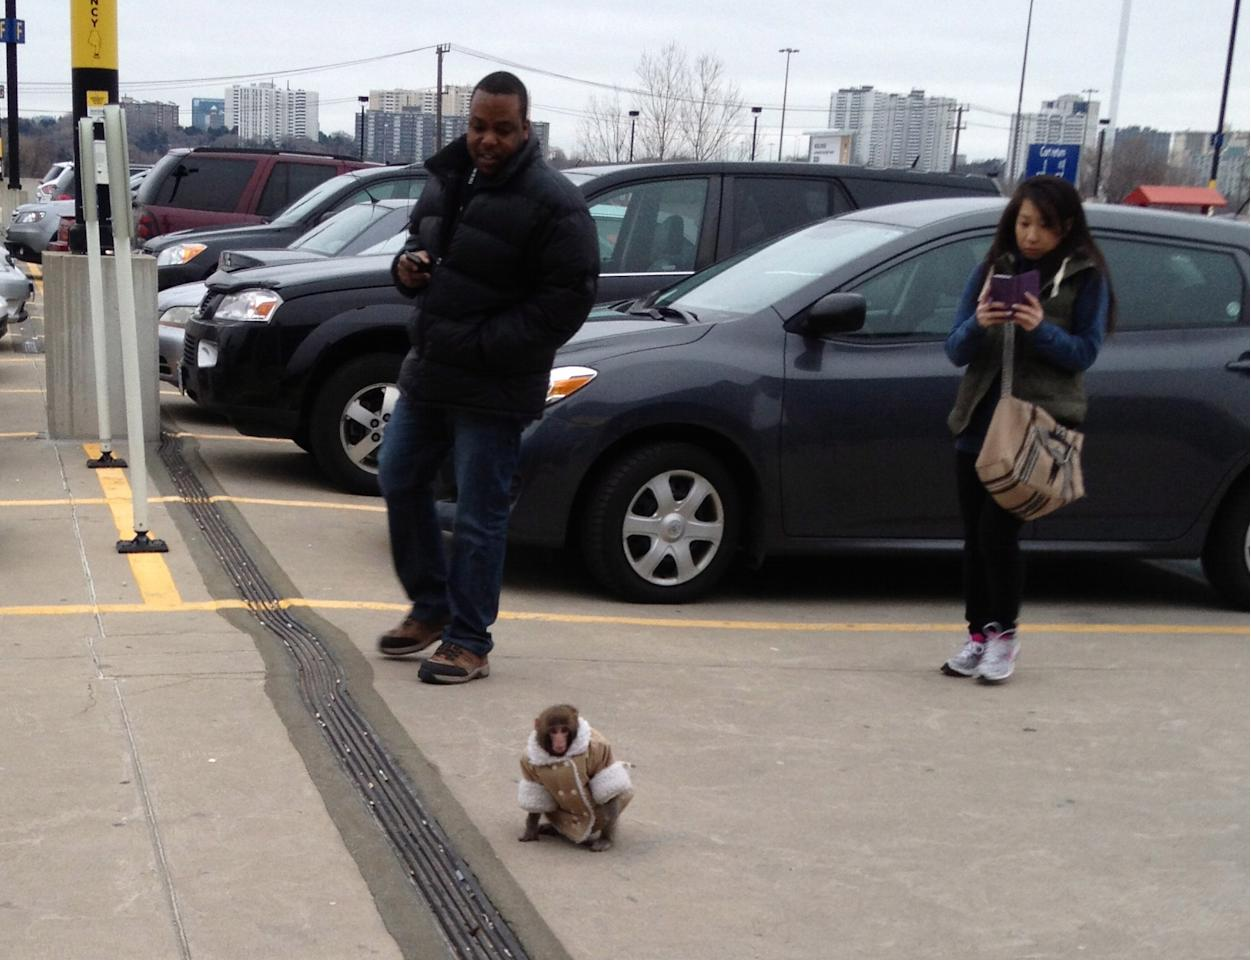 A small monkey wearing a winter coat and a diaper wanders around an IKEA parking lot in Toronto, as customers take pictures. The monkey let itself out of its crate in a parked car and went for a walk. The animal's owner contacted police later in the day and was reunited with their pet, police said. (AP Photo/Bronwyn Page via The Canadian Press)